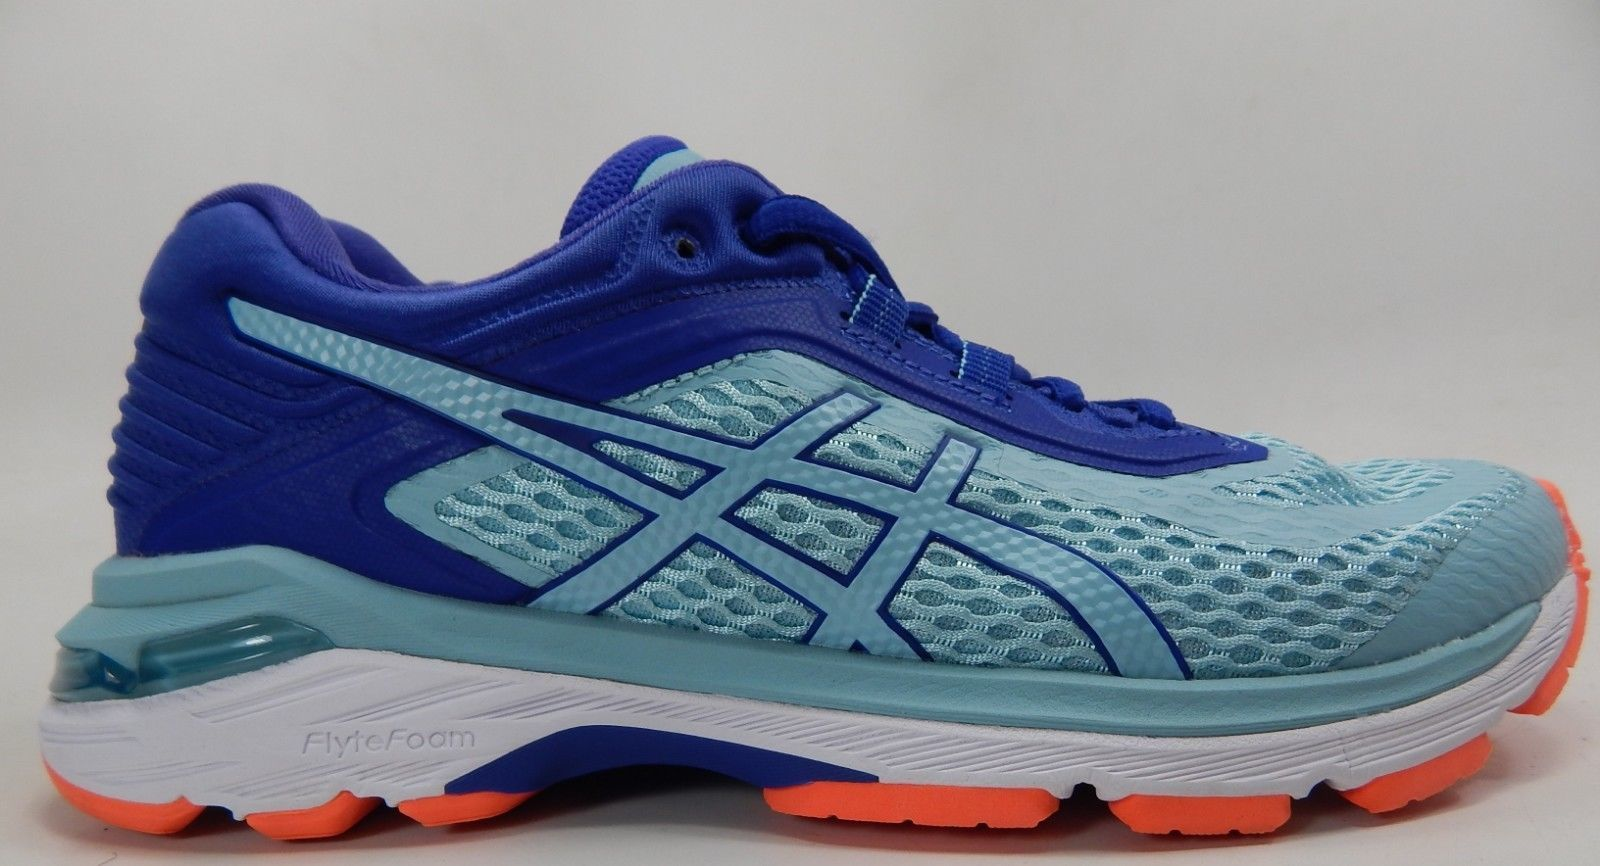 Asics GT 2000 v 6 Size US  6.5 M (B) EU 37.5 Women's Running Shoes Blue T855N